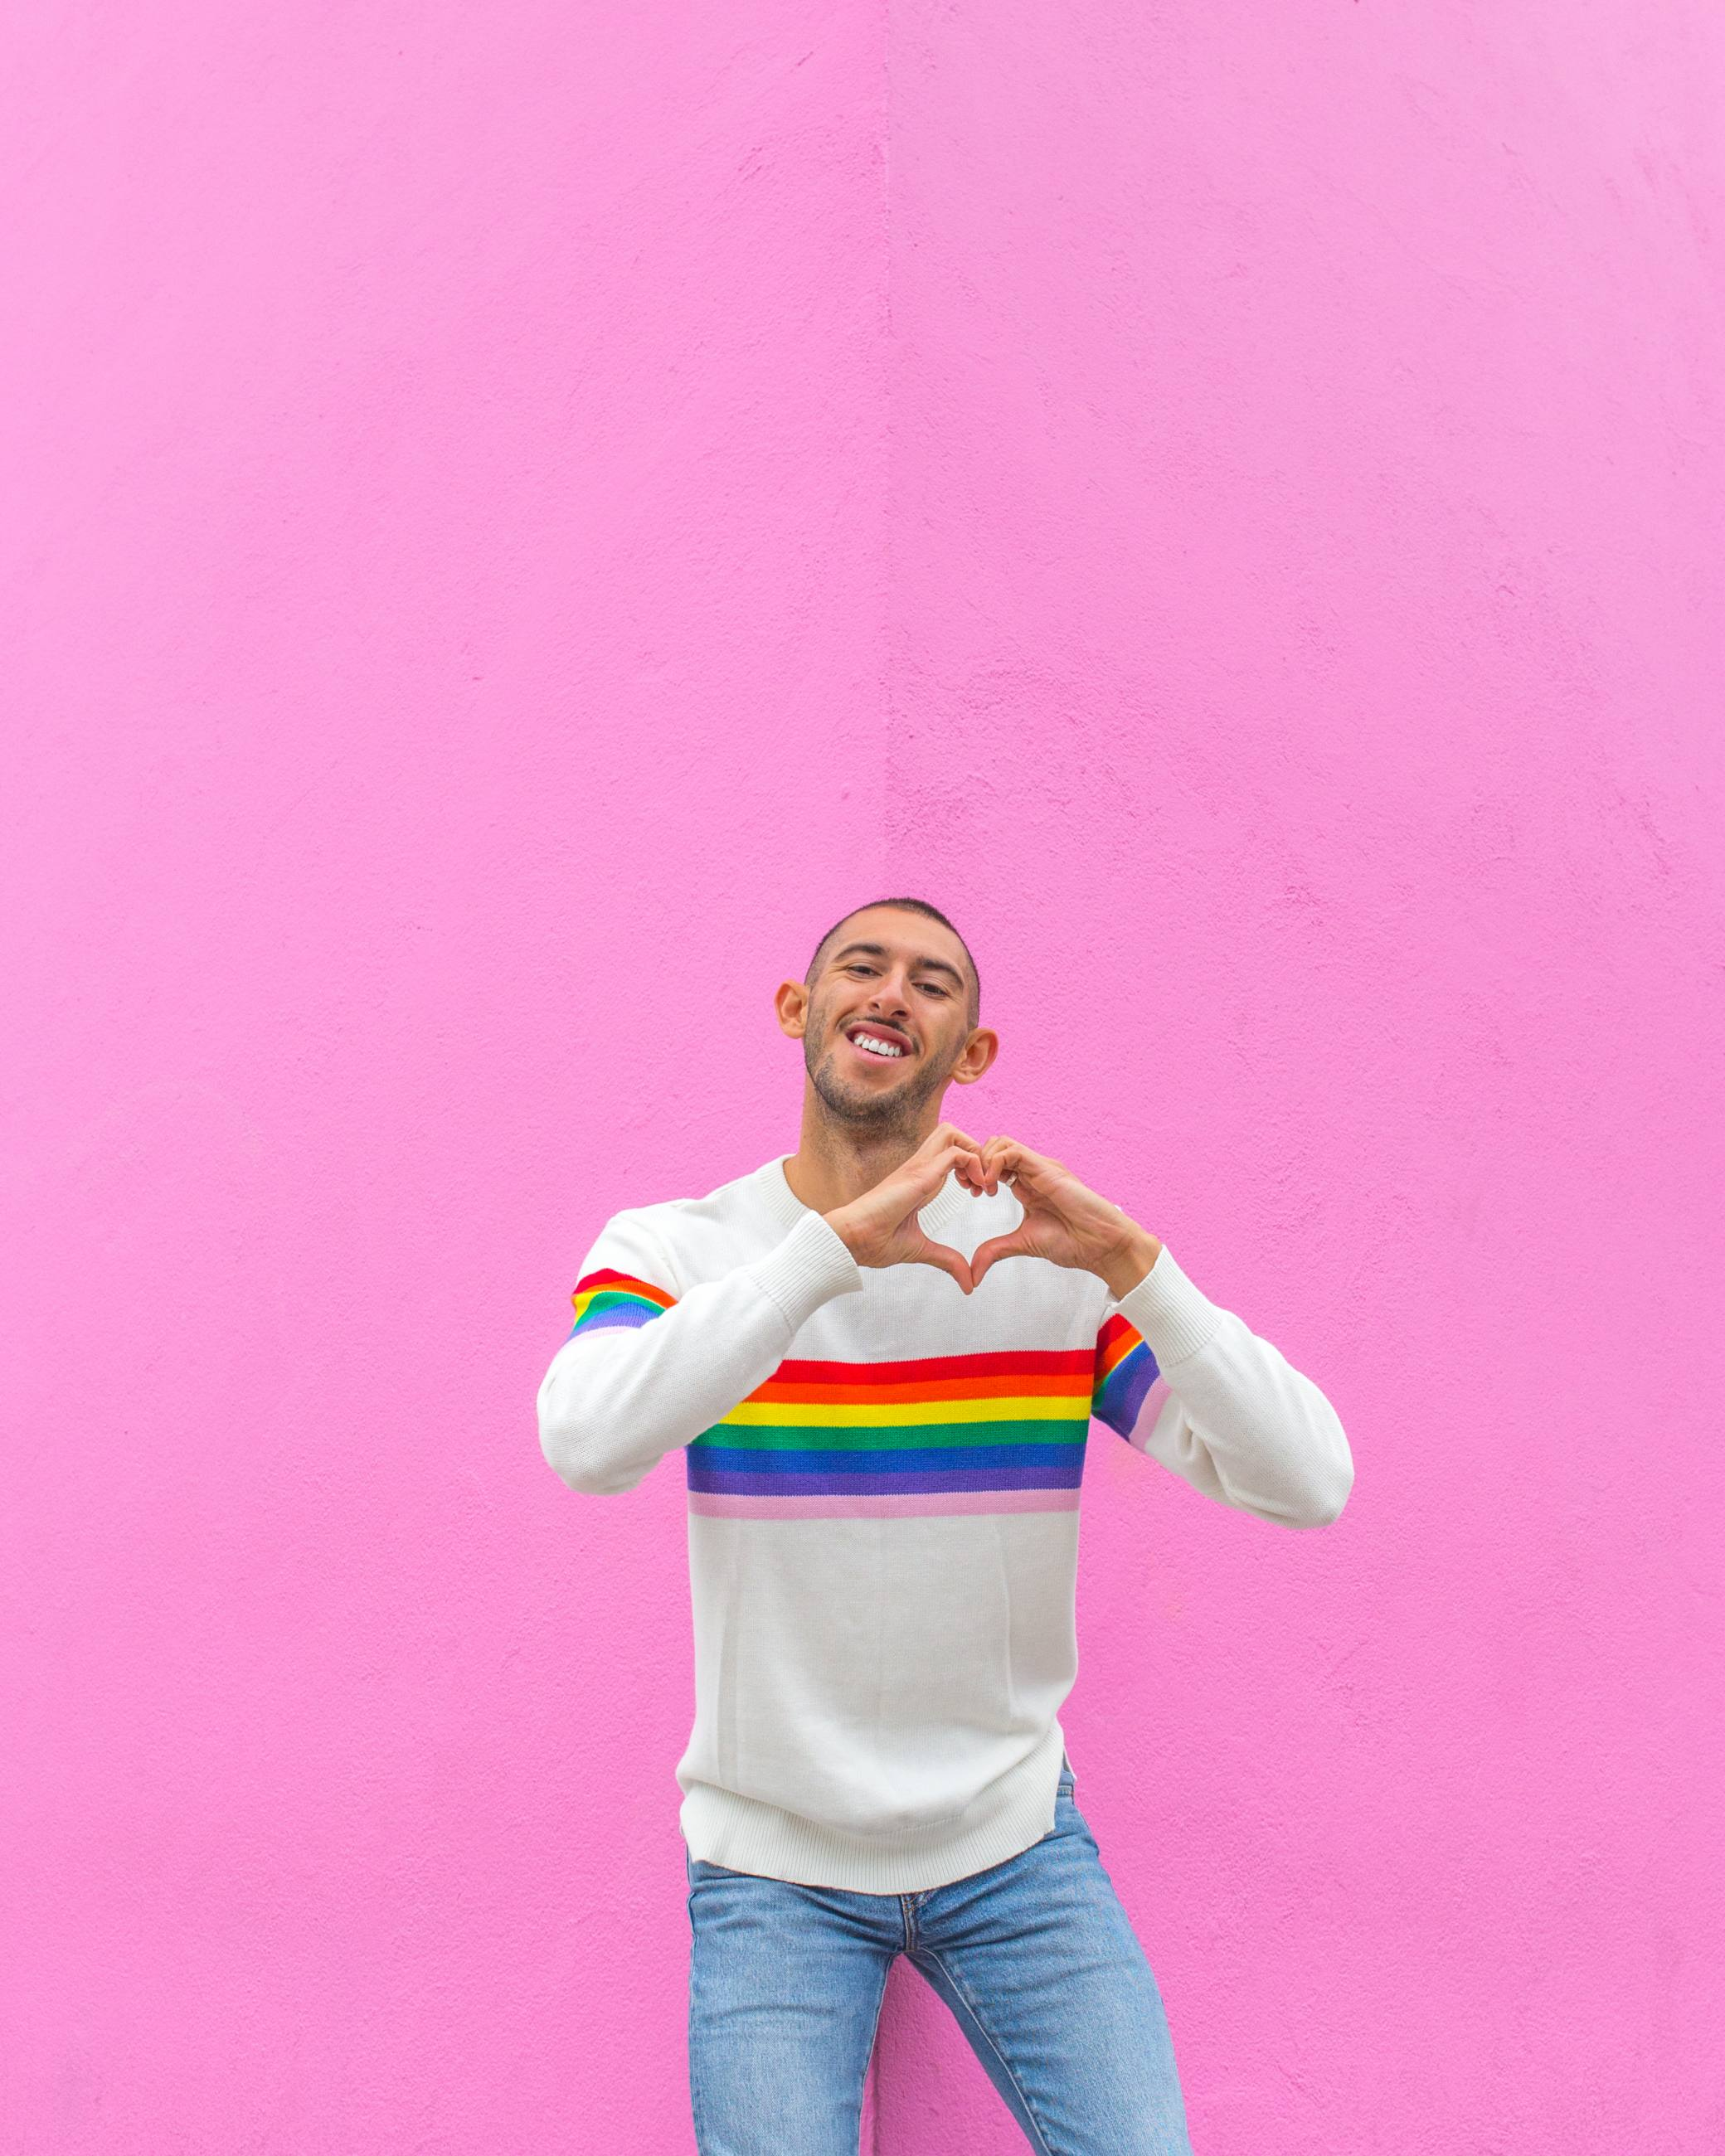 Paul Smith Pink Wall Freddy Rodriguez